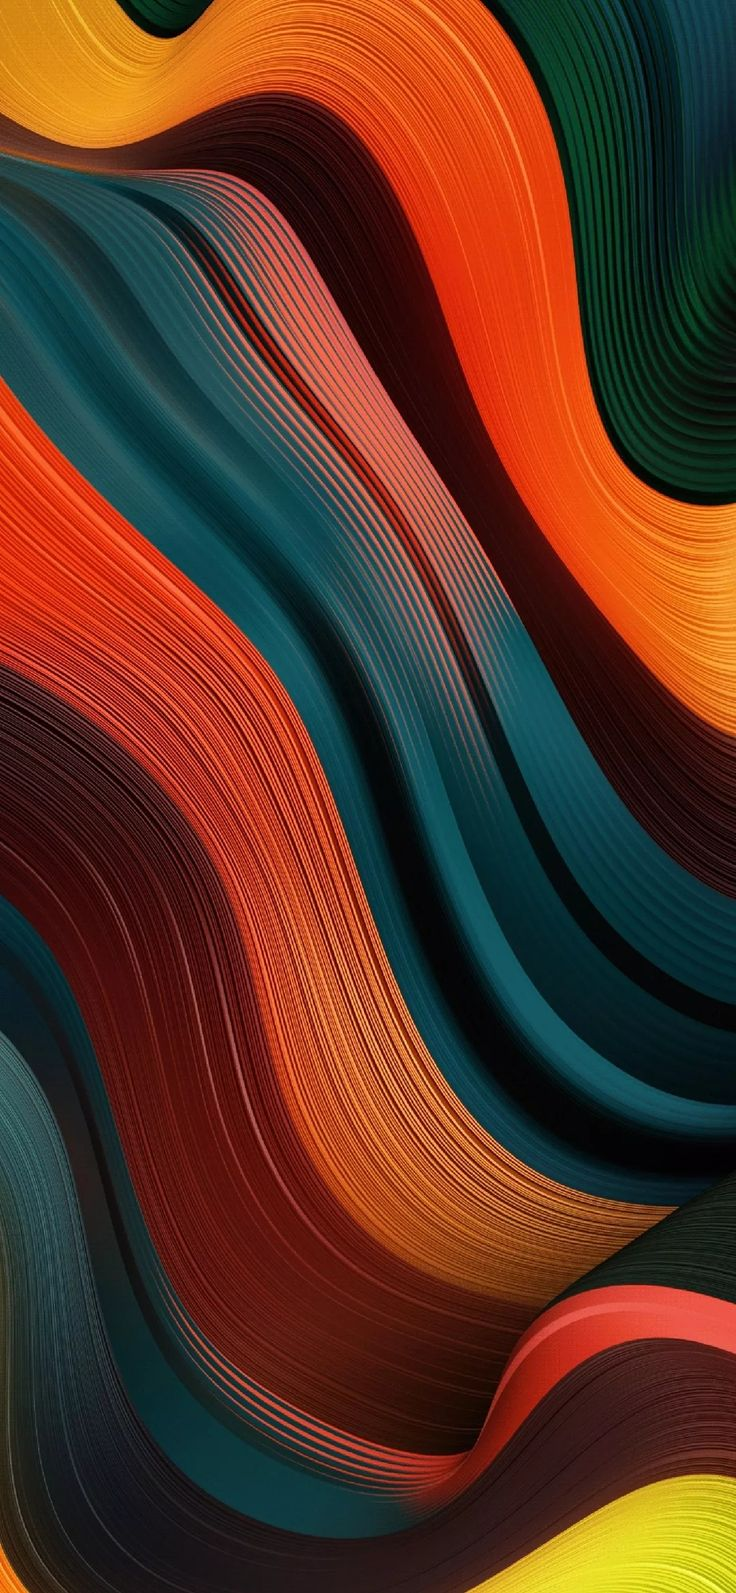 Download Wallpaper for iPhone 11 Pro Here! FullHD